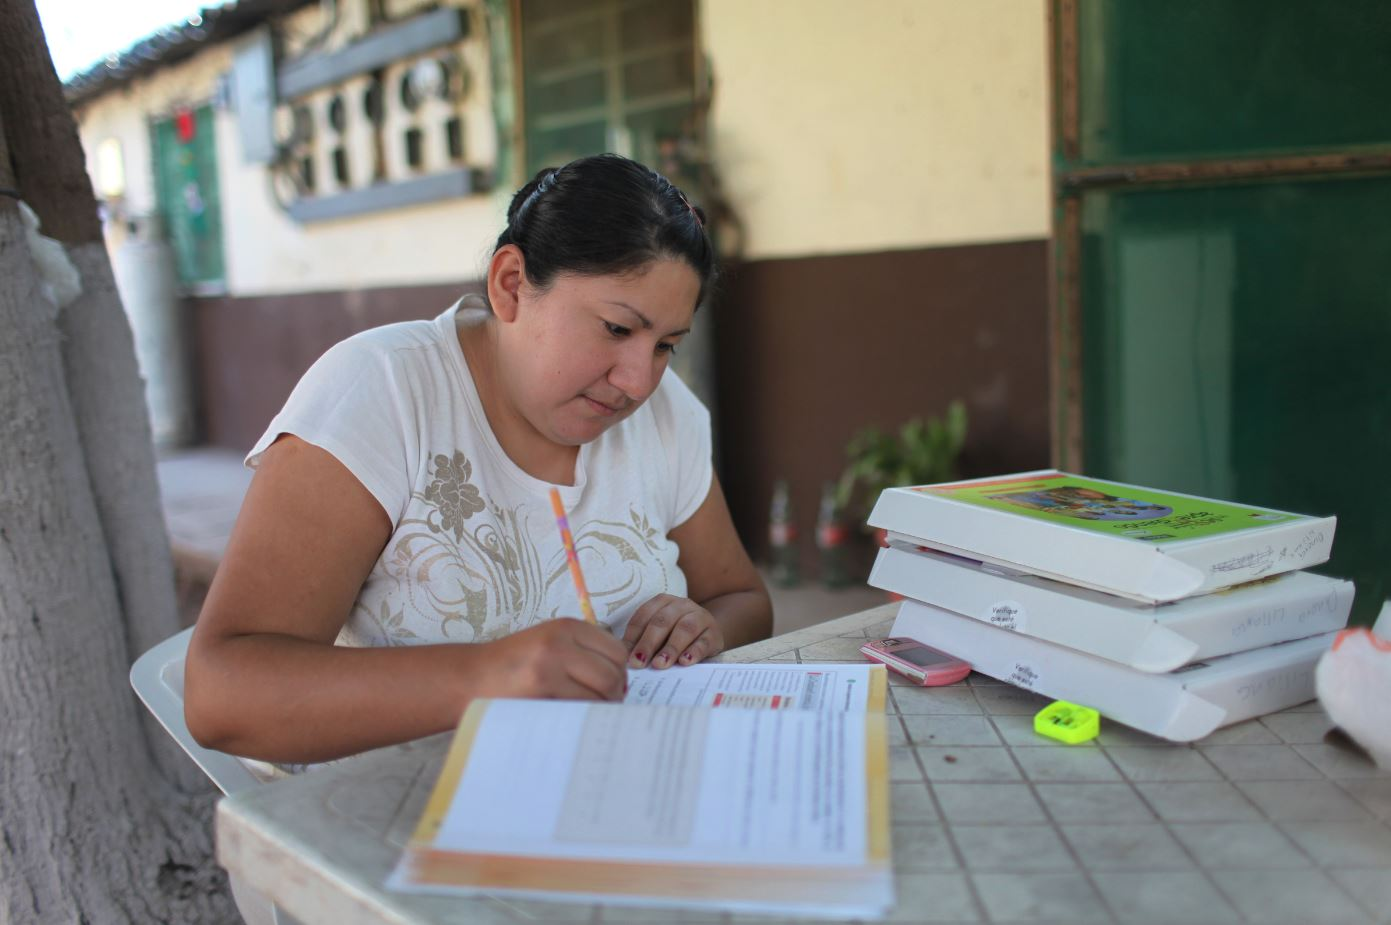 Divemex: Culiacán, Mexico | Dinora Verduzco Ayón, 26, from Tamasula, Durango, completes her assignments for the open adult junior high school course she is undertaking as the recipient of a Whole Trade-sponsored employee scholarship.